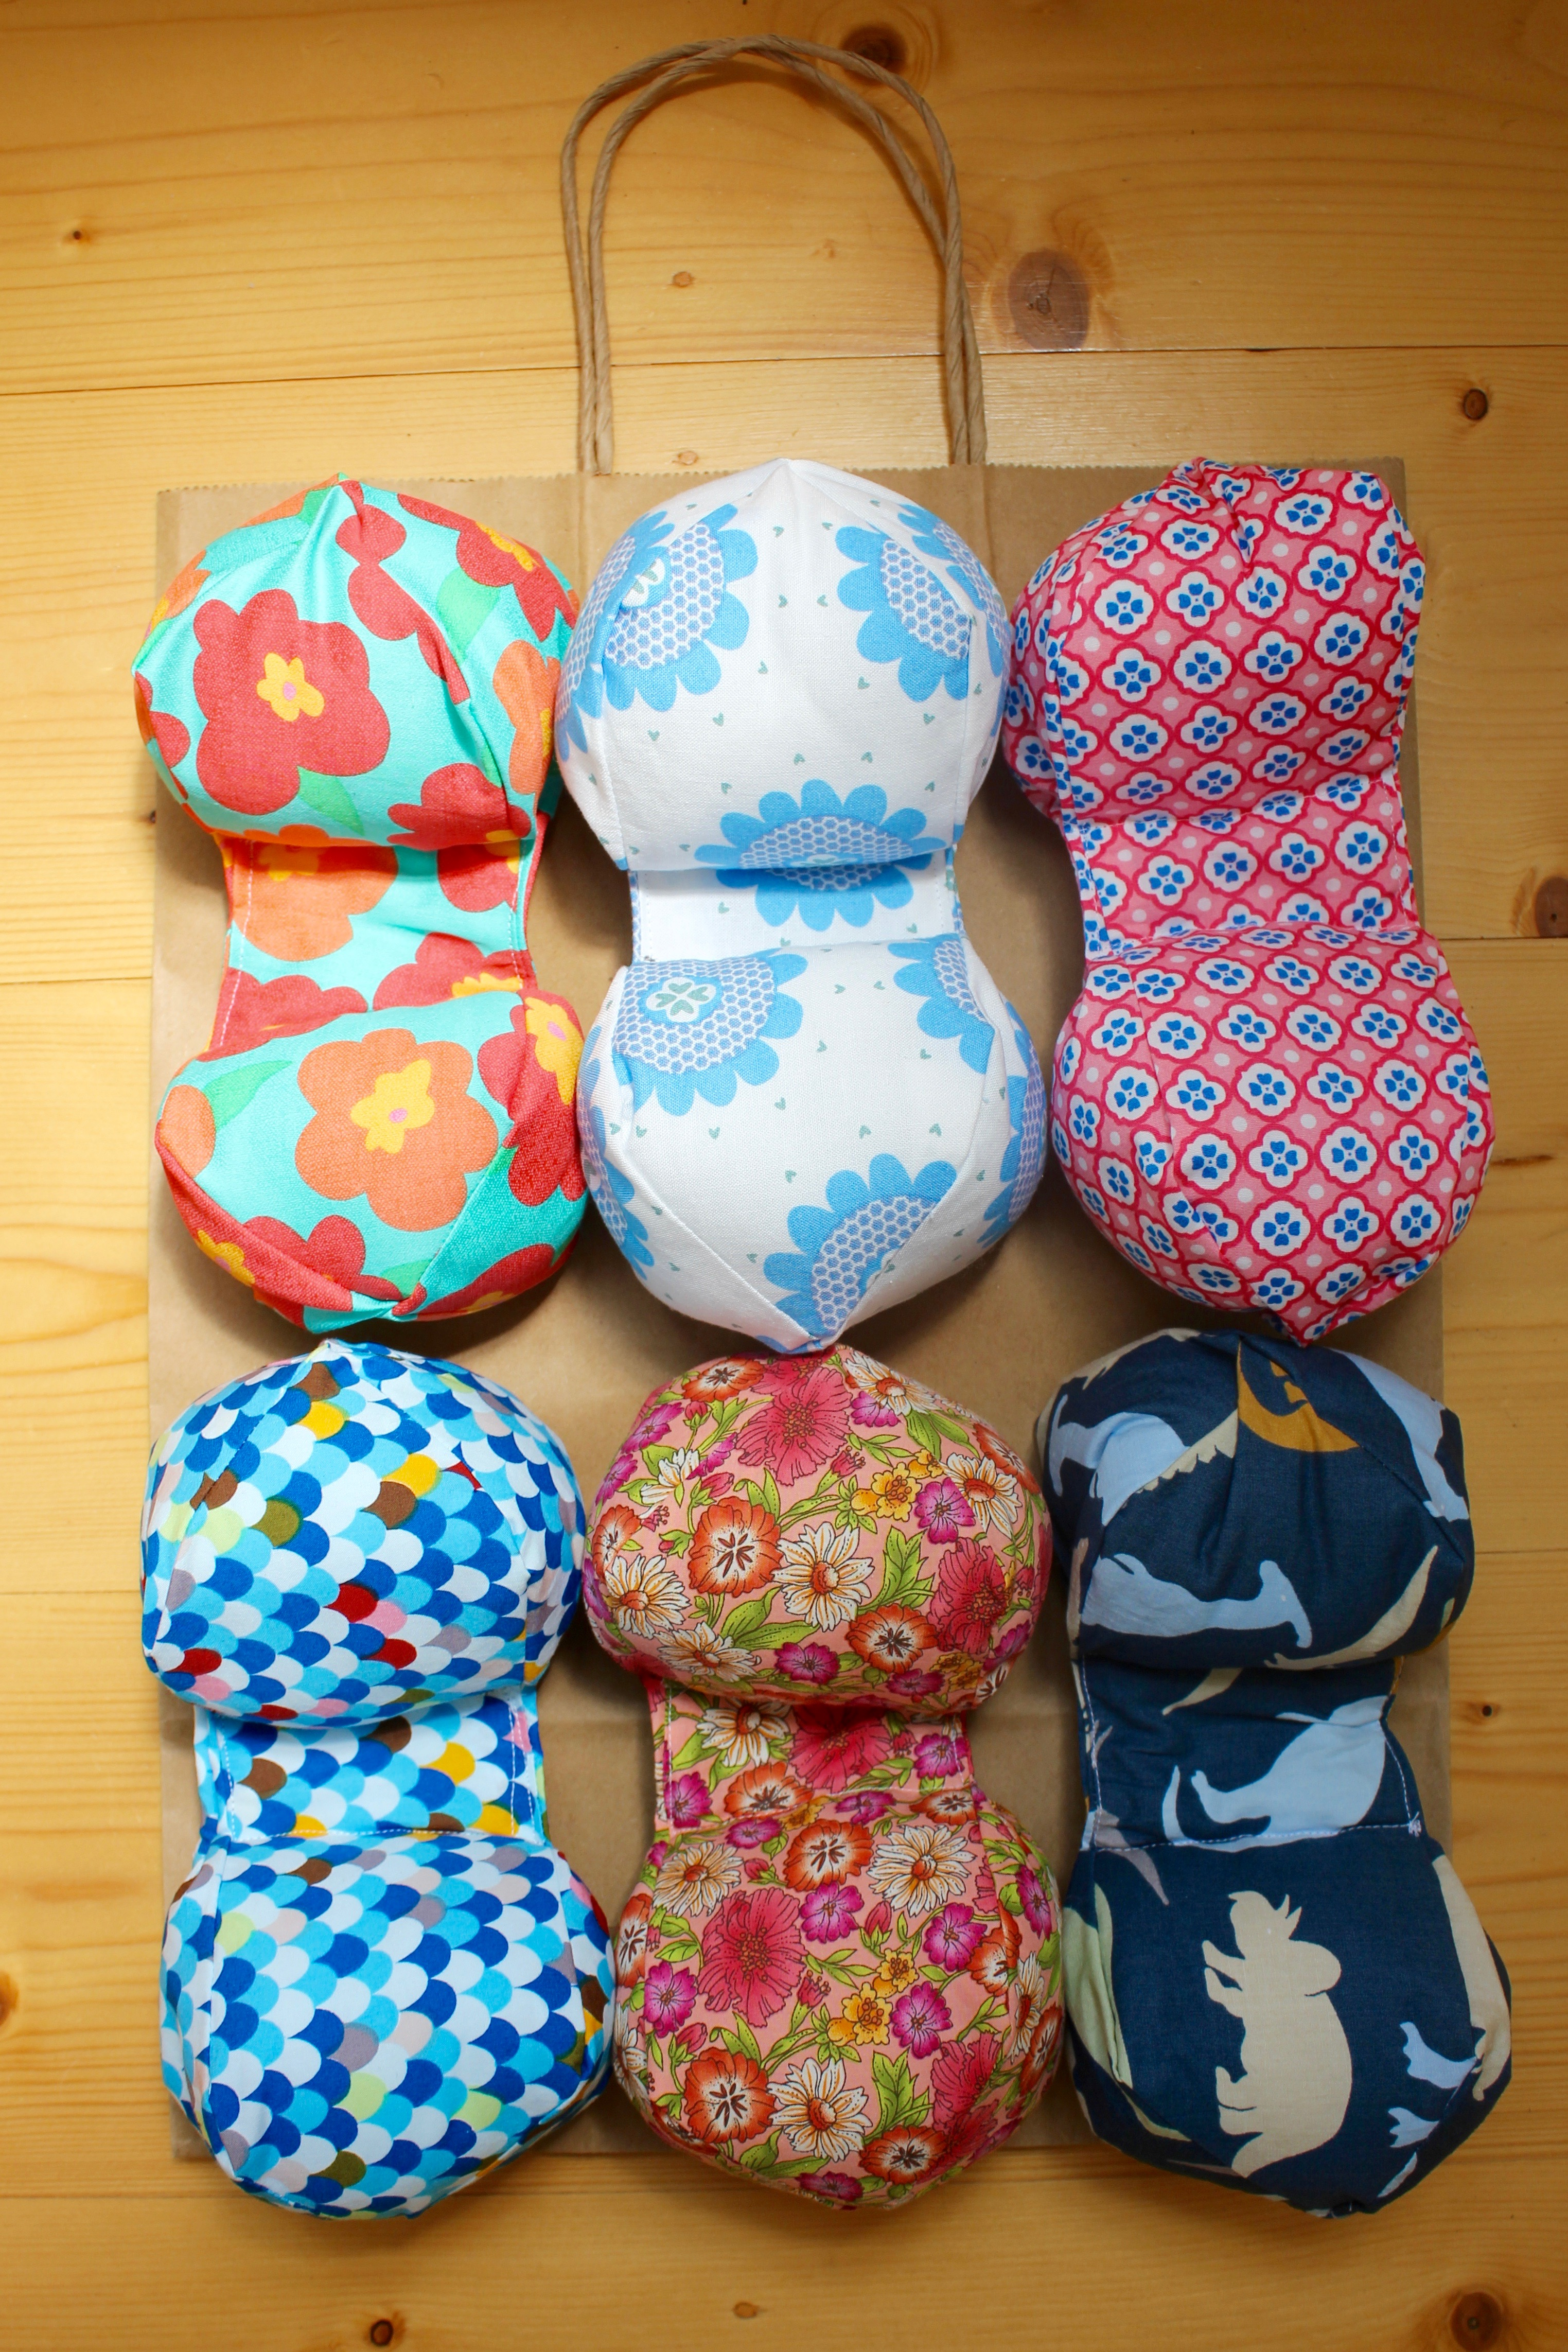 Peanut pillow tutorial for premature babies